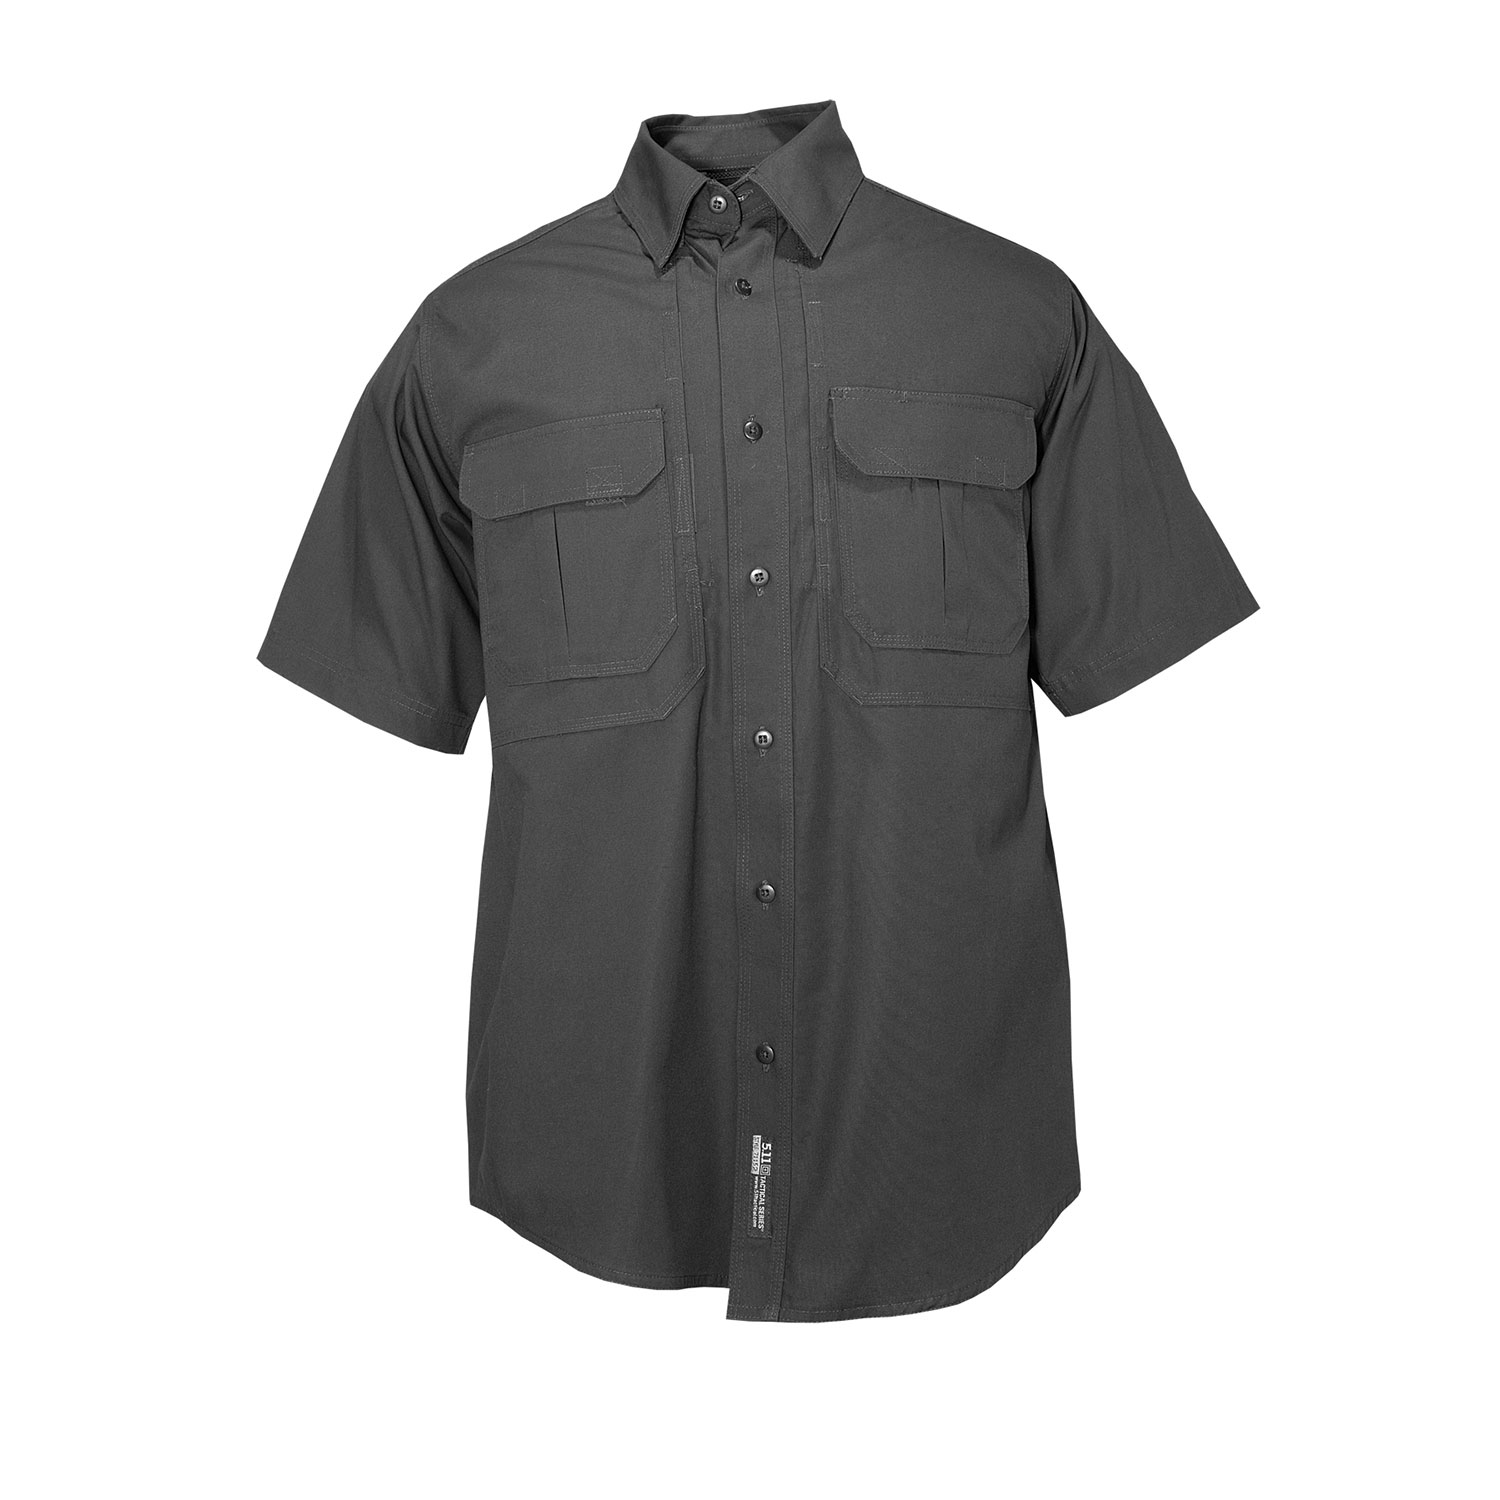 5.11 Tactical Cotton Canvas Short Sleeve Shirt